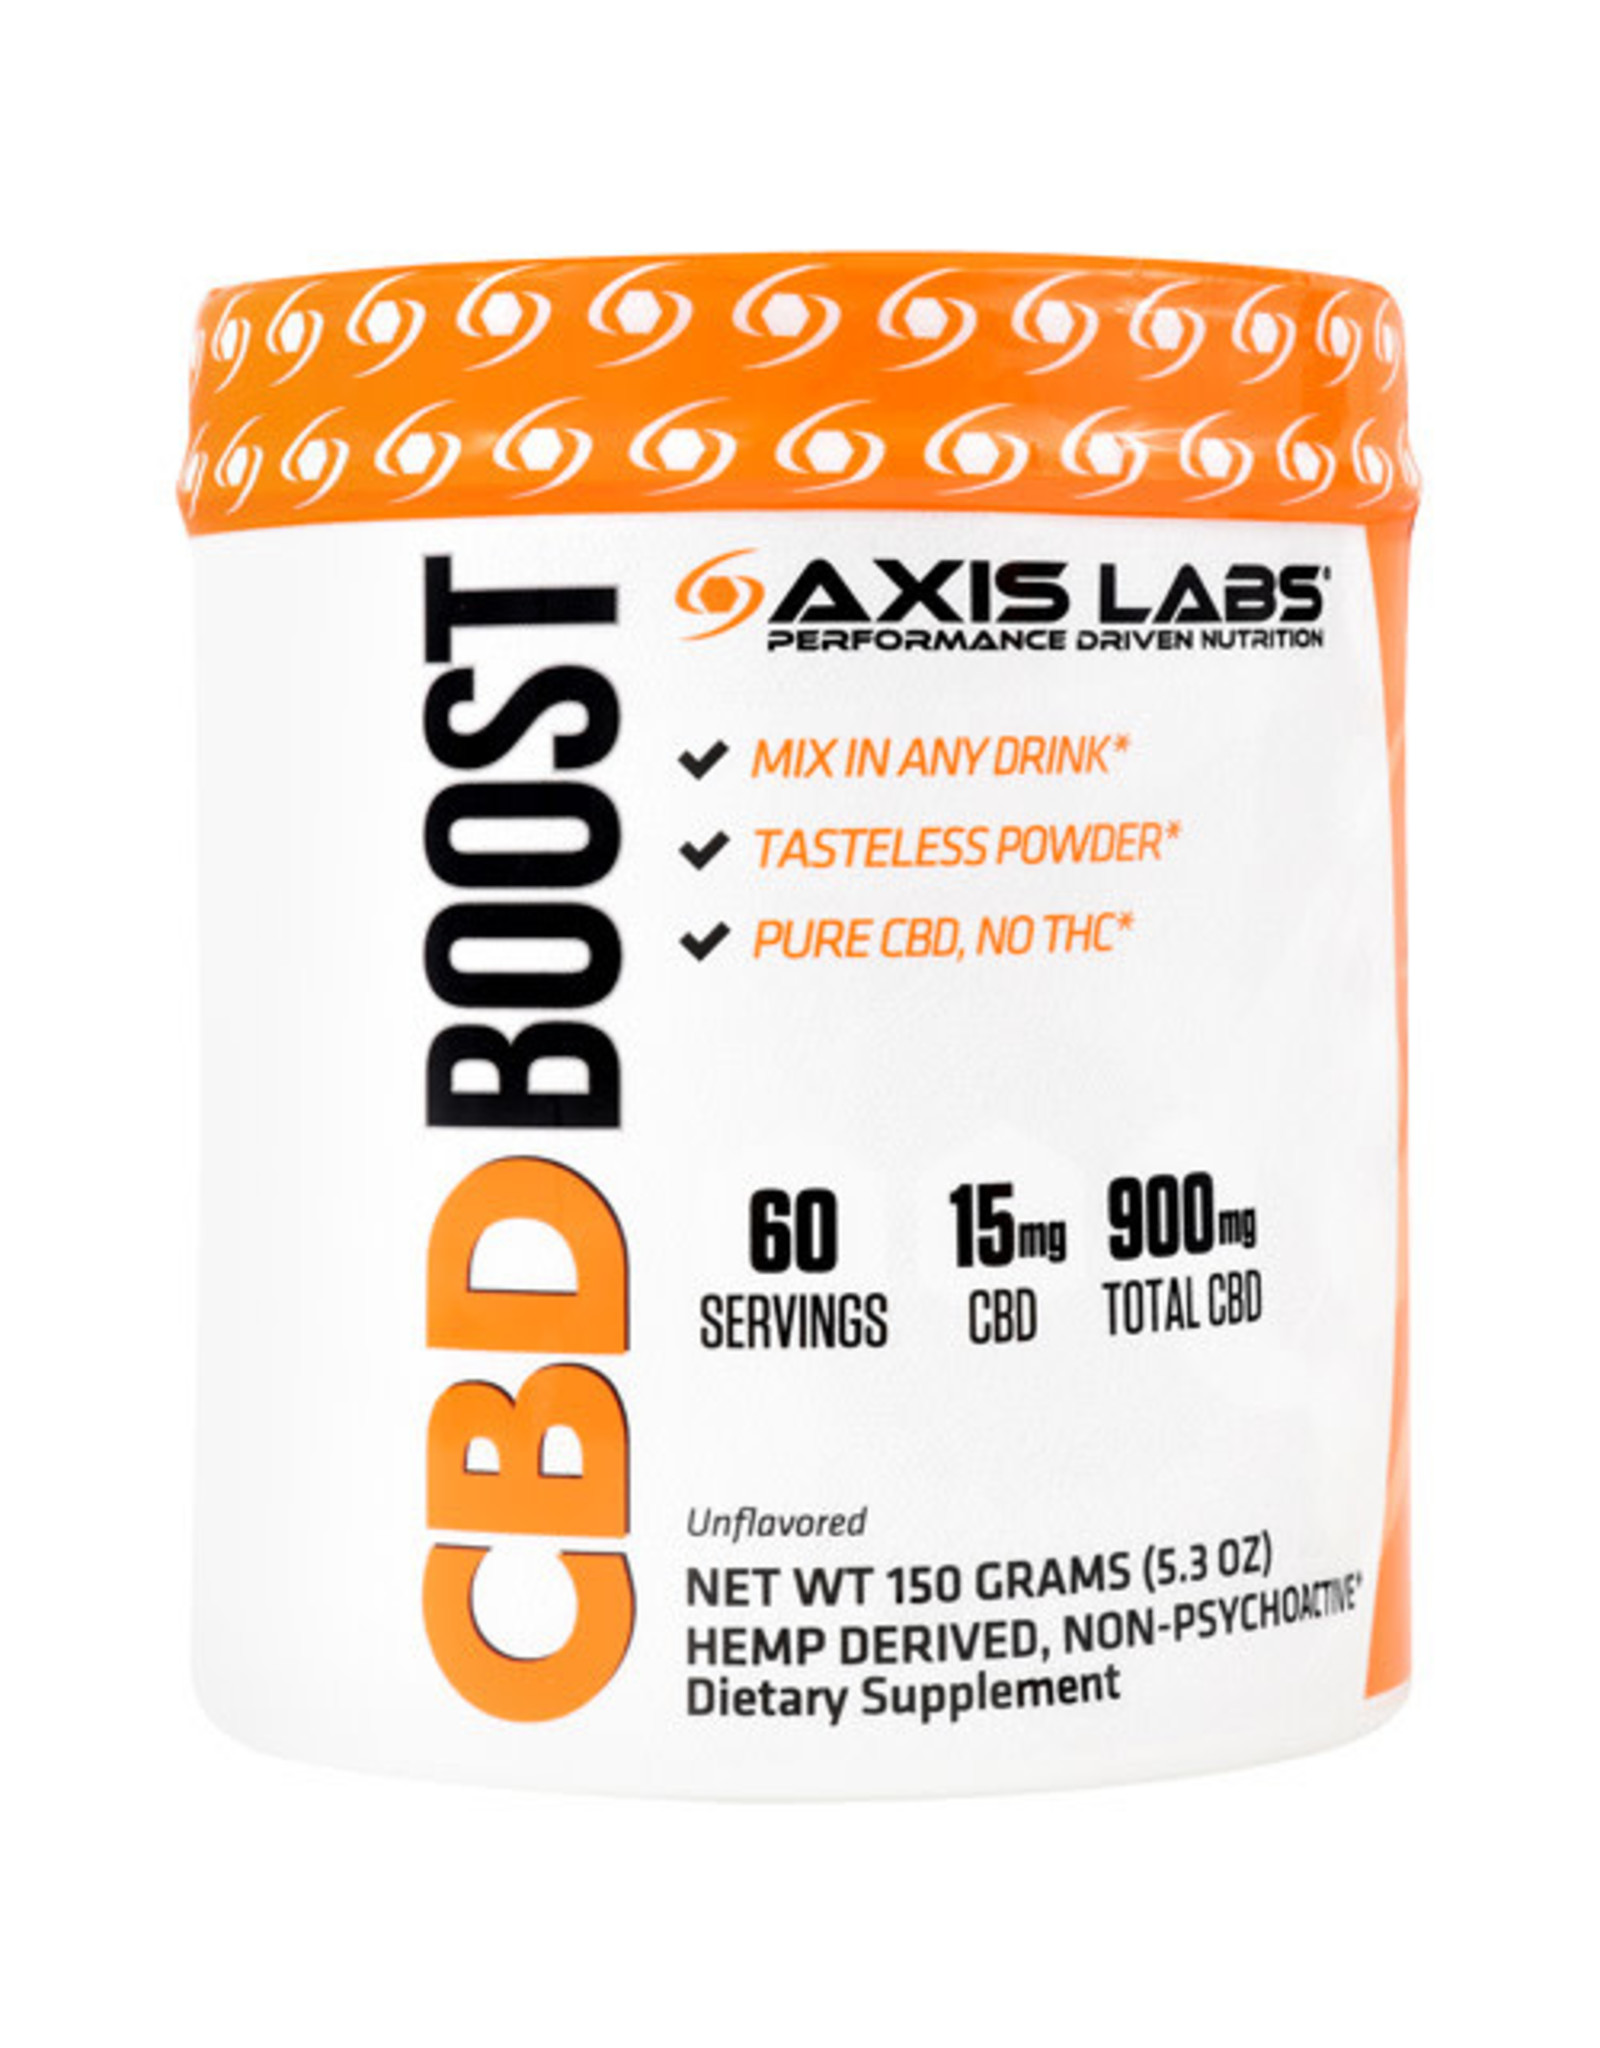 Axis Labs CBD Boost 900mg 60 Servings 5.3oz